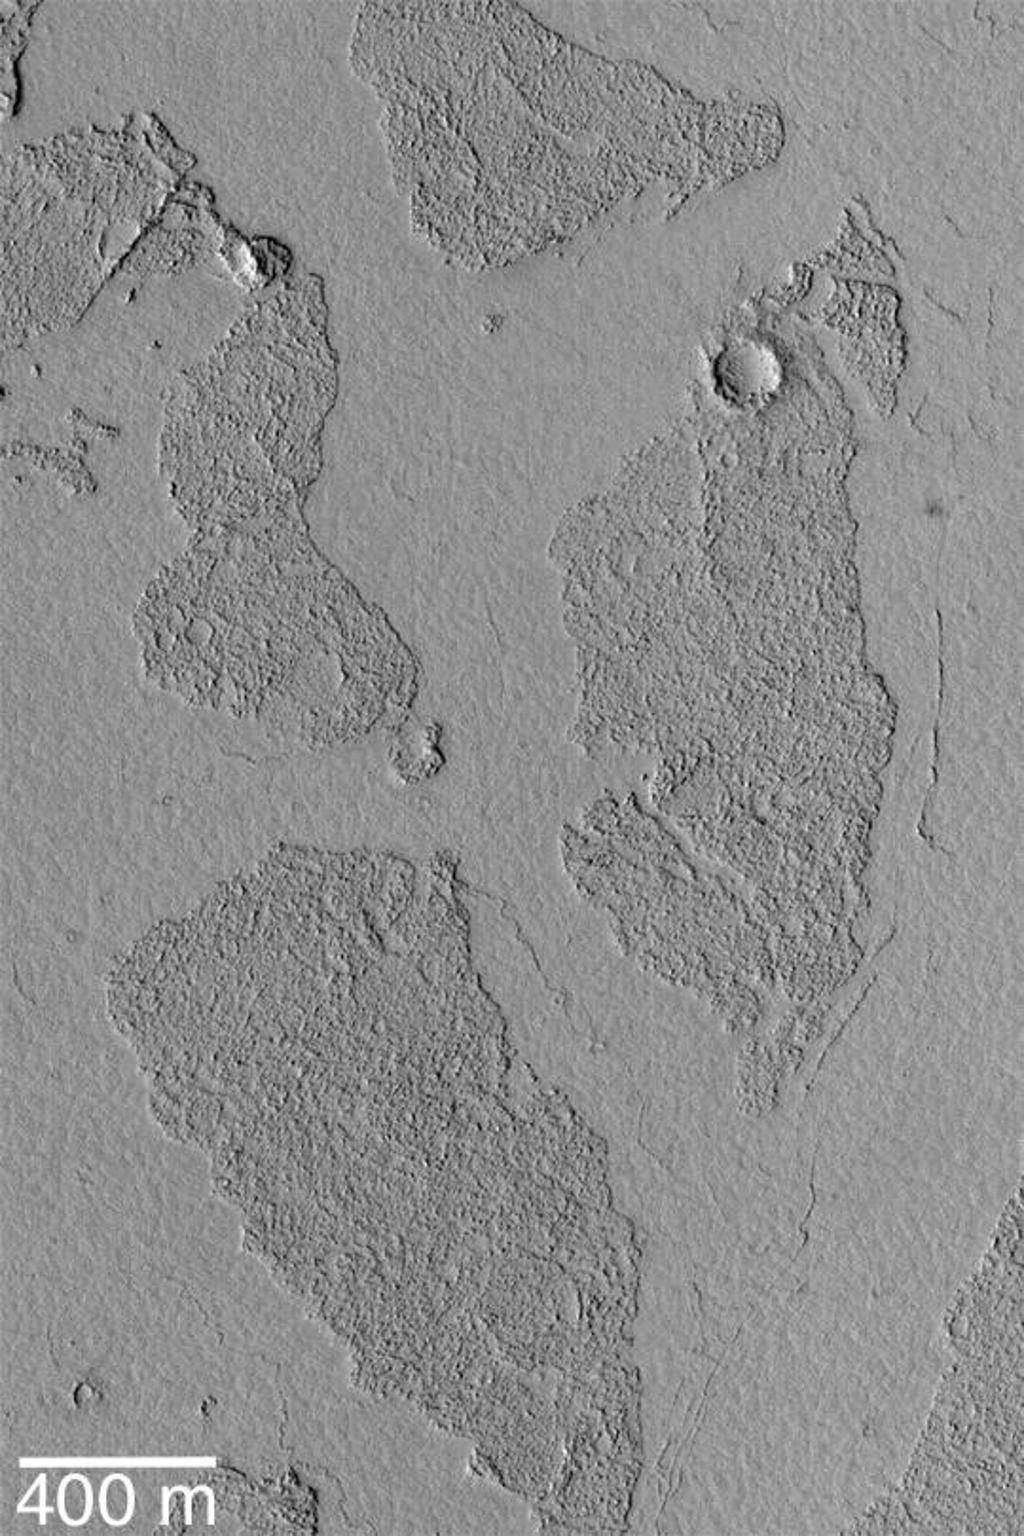 The Marte Vallis system, located east of Cerberus and west of Amazonis Planitia, is known for its array of broken, platy flow features. This Mars Global Surveyor (MGS) Mars Orbiter Camera (MOC) image shows a close-up view of some of these plates; they appear to be like puzzle pieces that have been broken apart and moved away from each other. The Mars science community has been discussing these features for the past several years--either the flows in Marte Vallis are lava flows, or mud flows. In either case, the material was very fluid and had a thin crust on its surface. As the material continued to flow through the valley system, the crust broke up into smaller plates that were then rafted some distance down the valley. This picture is located near 6.9°N, 182.8°W. It is illuminated by sunlight from the left.